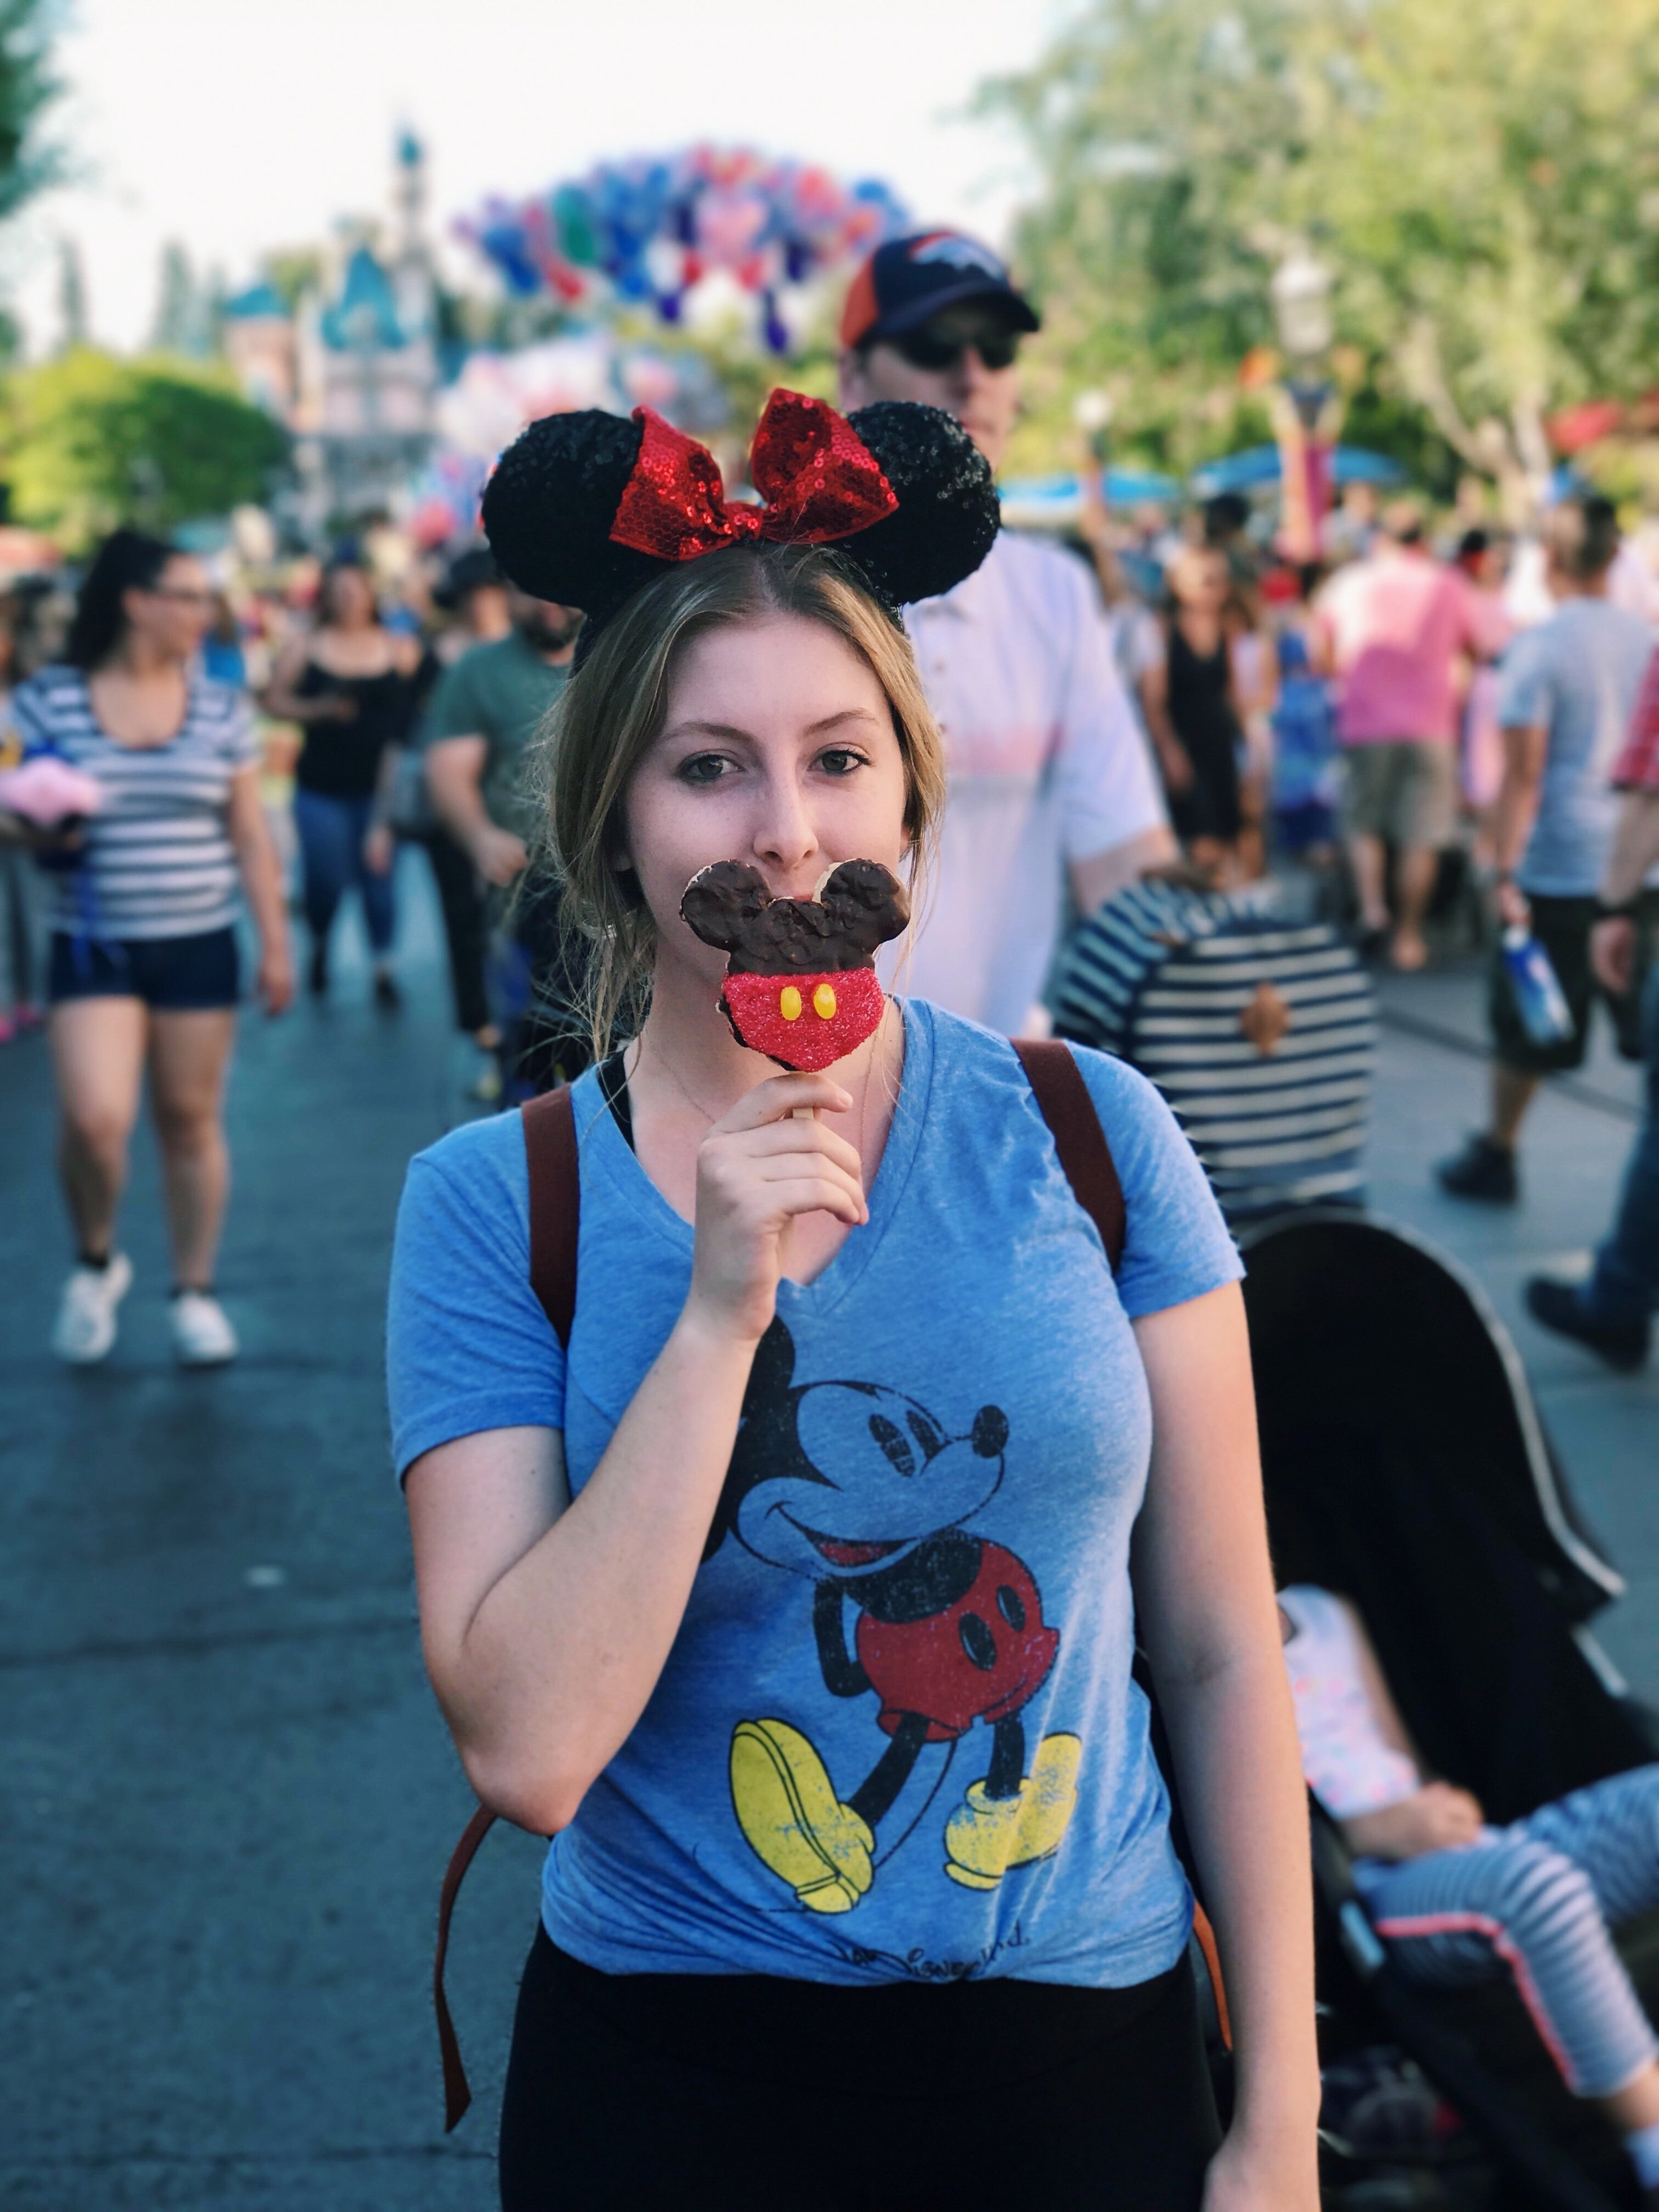 Going to disneyland? Check out these 10 insta-worthy treats! -